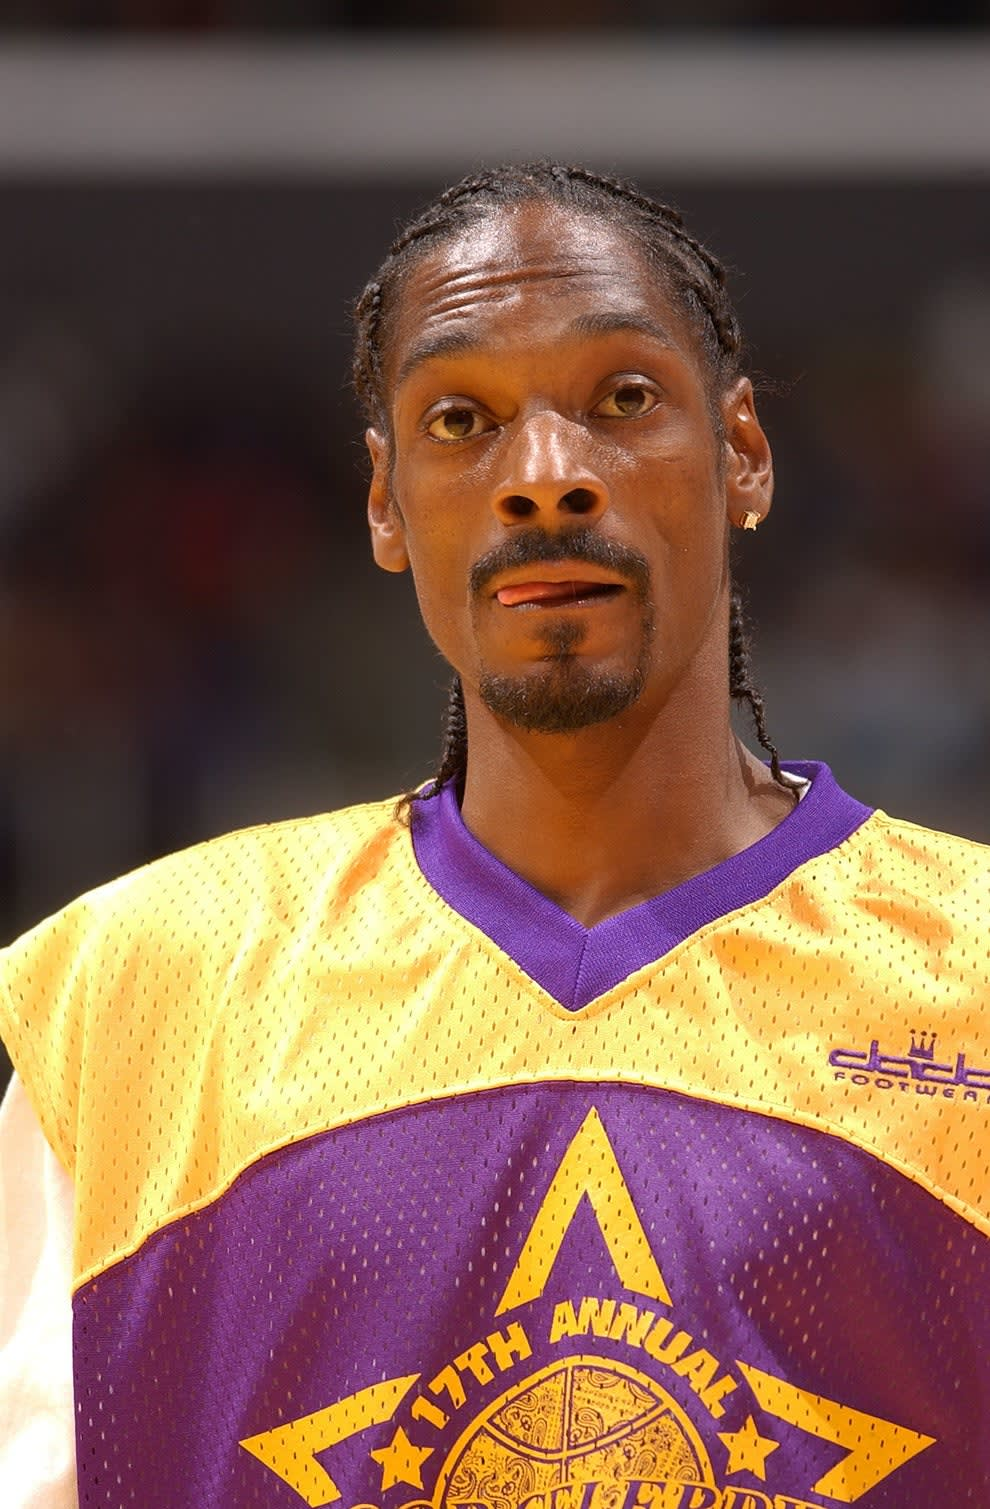 Snoop in a Lakers jersey